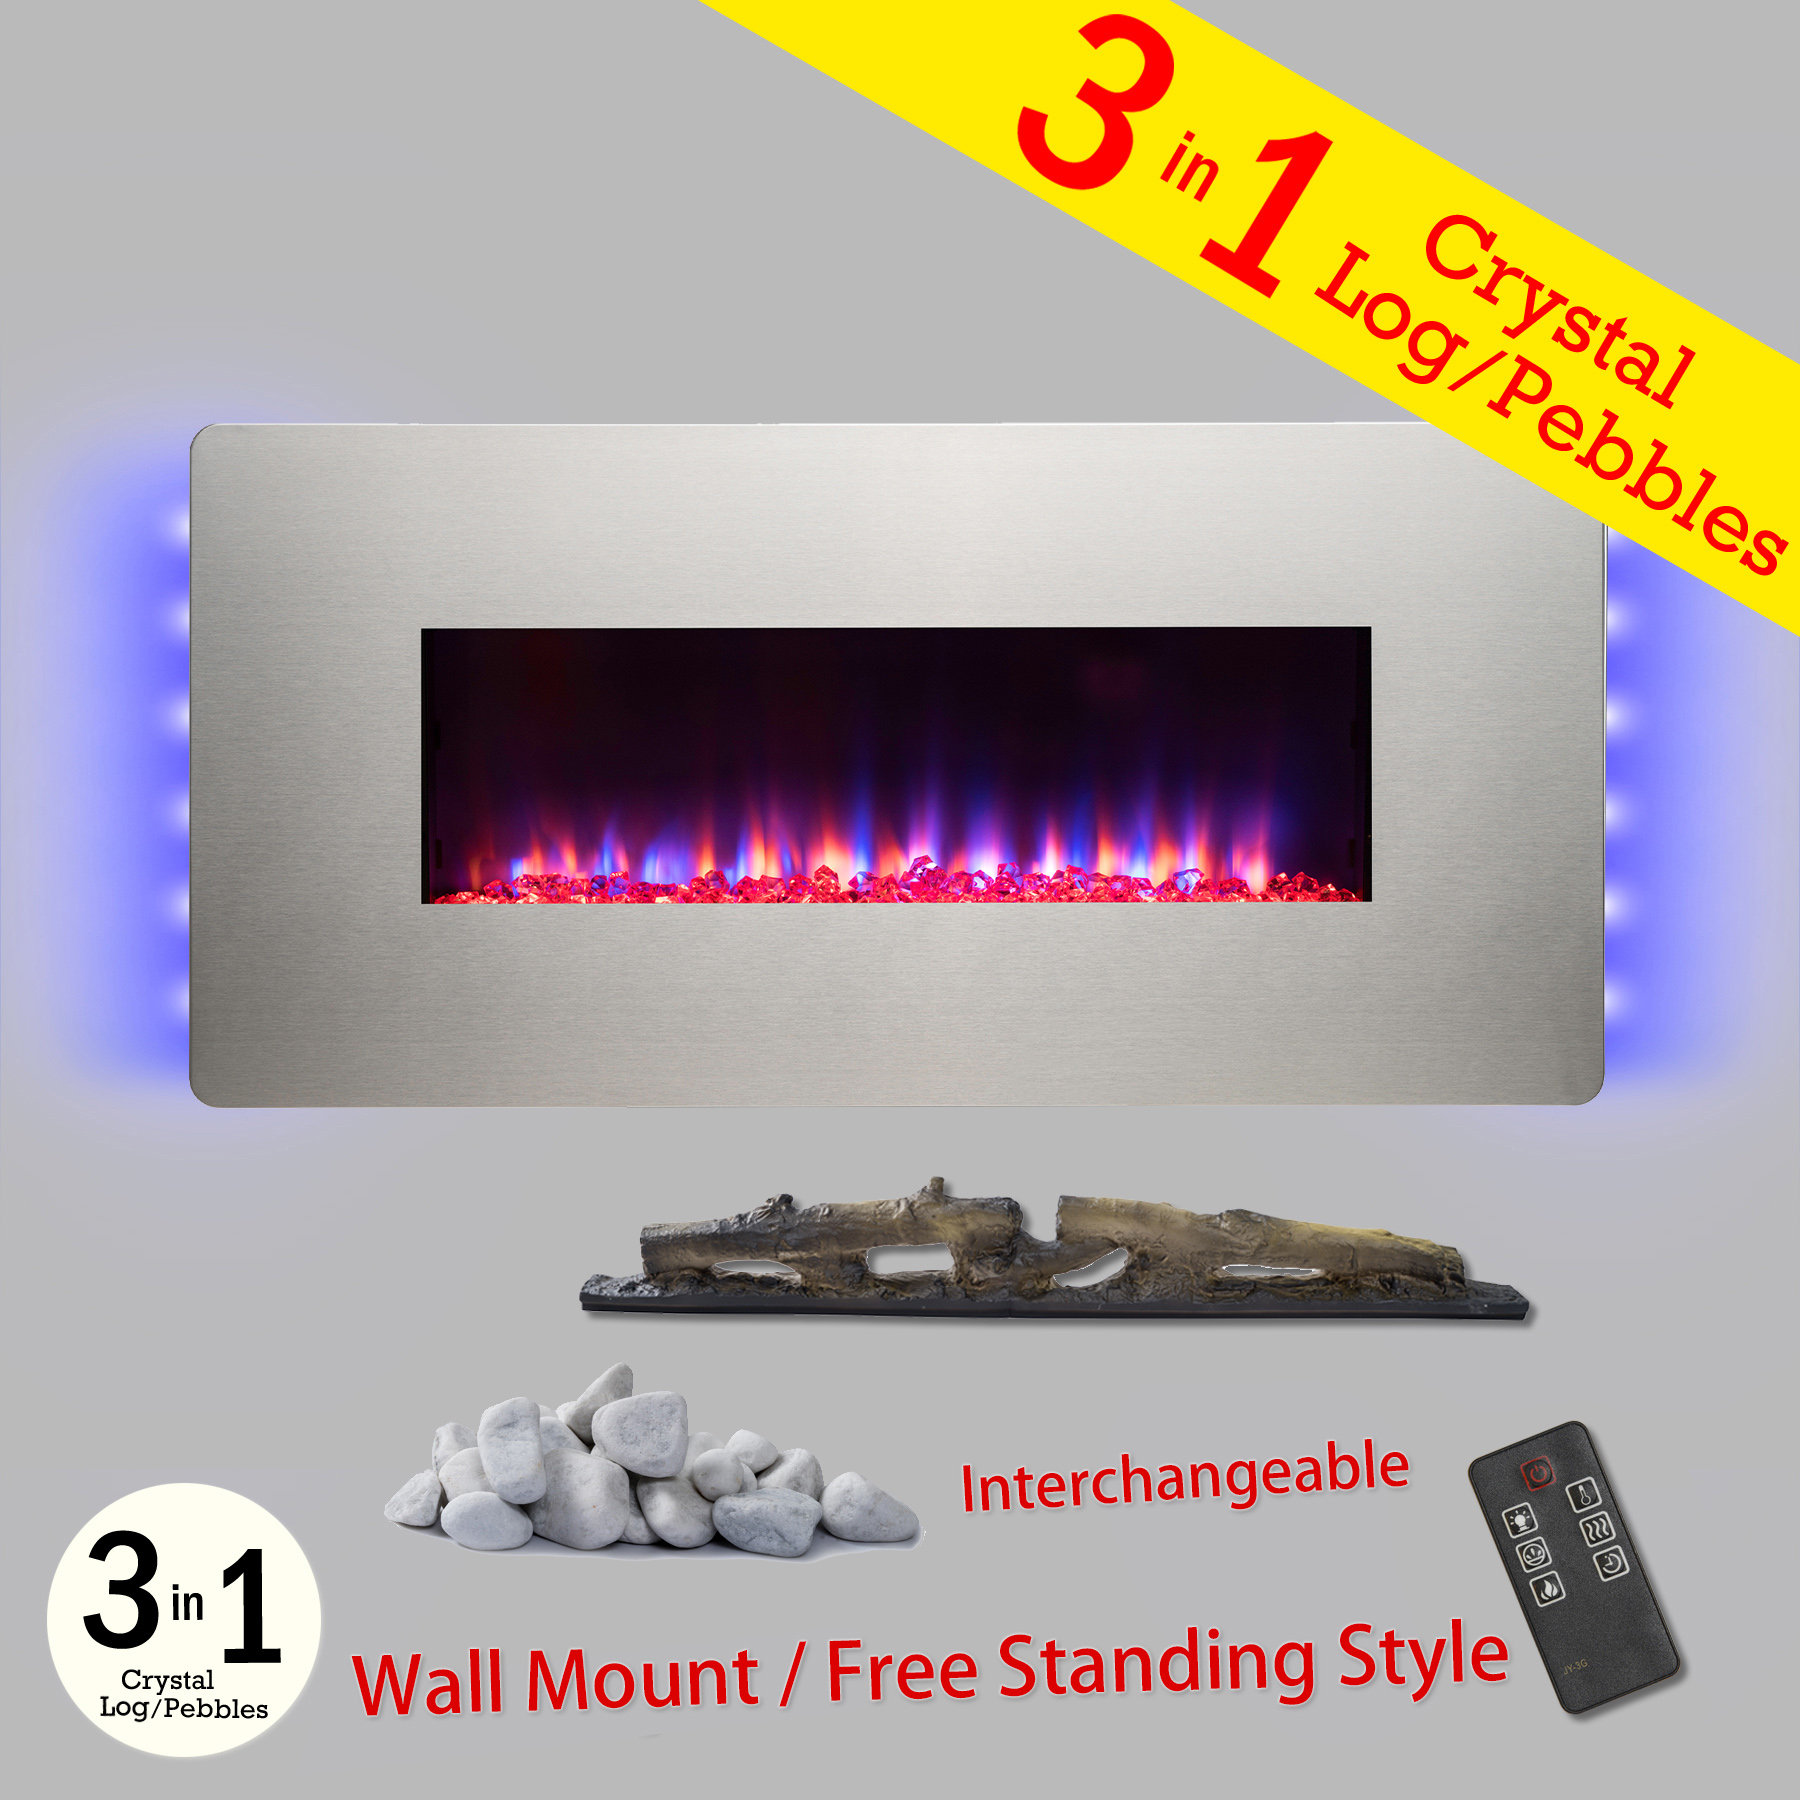 "AKDY FP0066 3-in-1 36"" Adjustable Push Button Control Wall Mount & Freestanding Convertible Electric Fireplace Stove Heater w/ Back Light Remote Control Easy Install Stand"